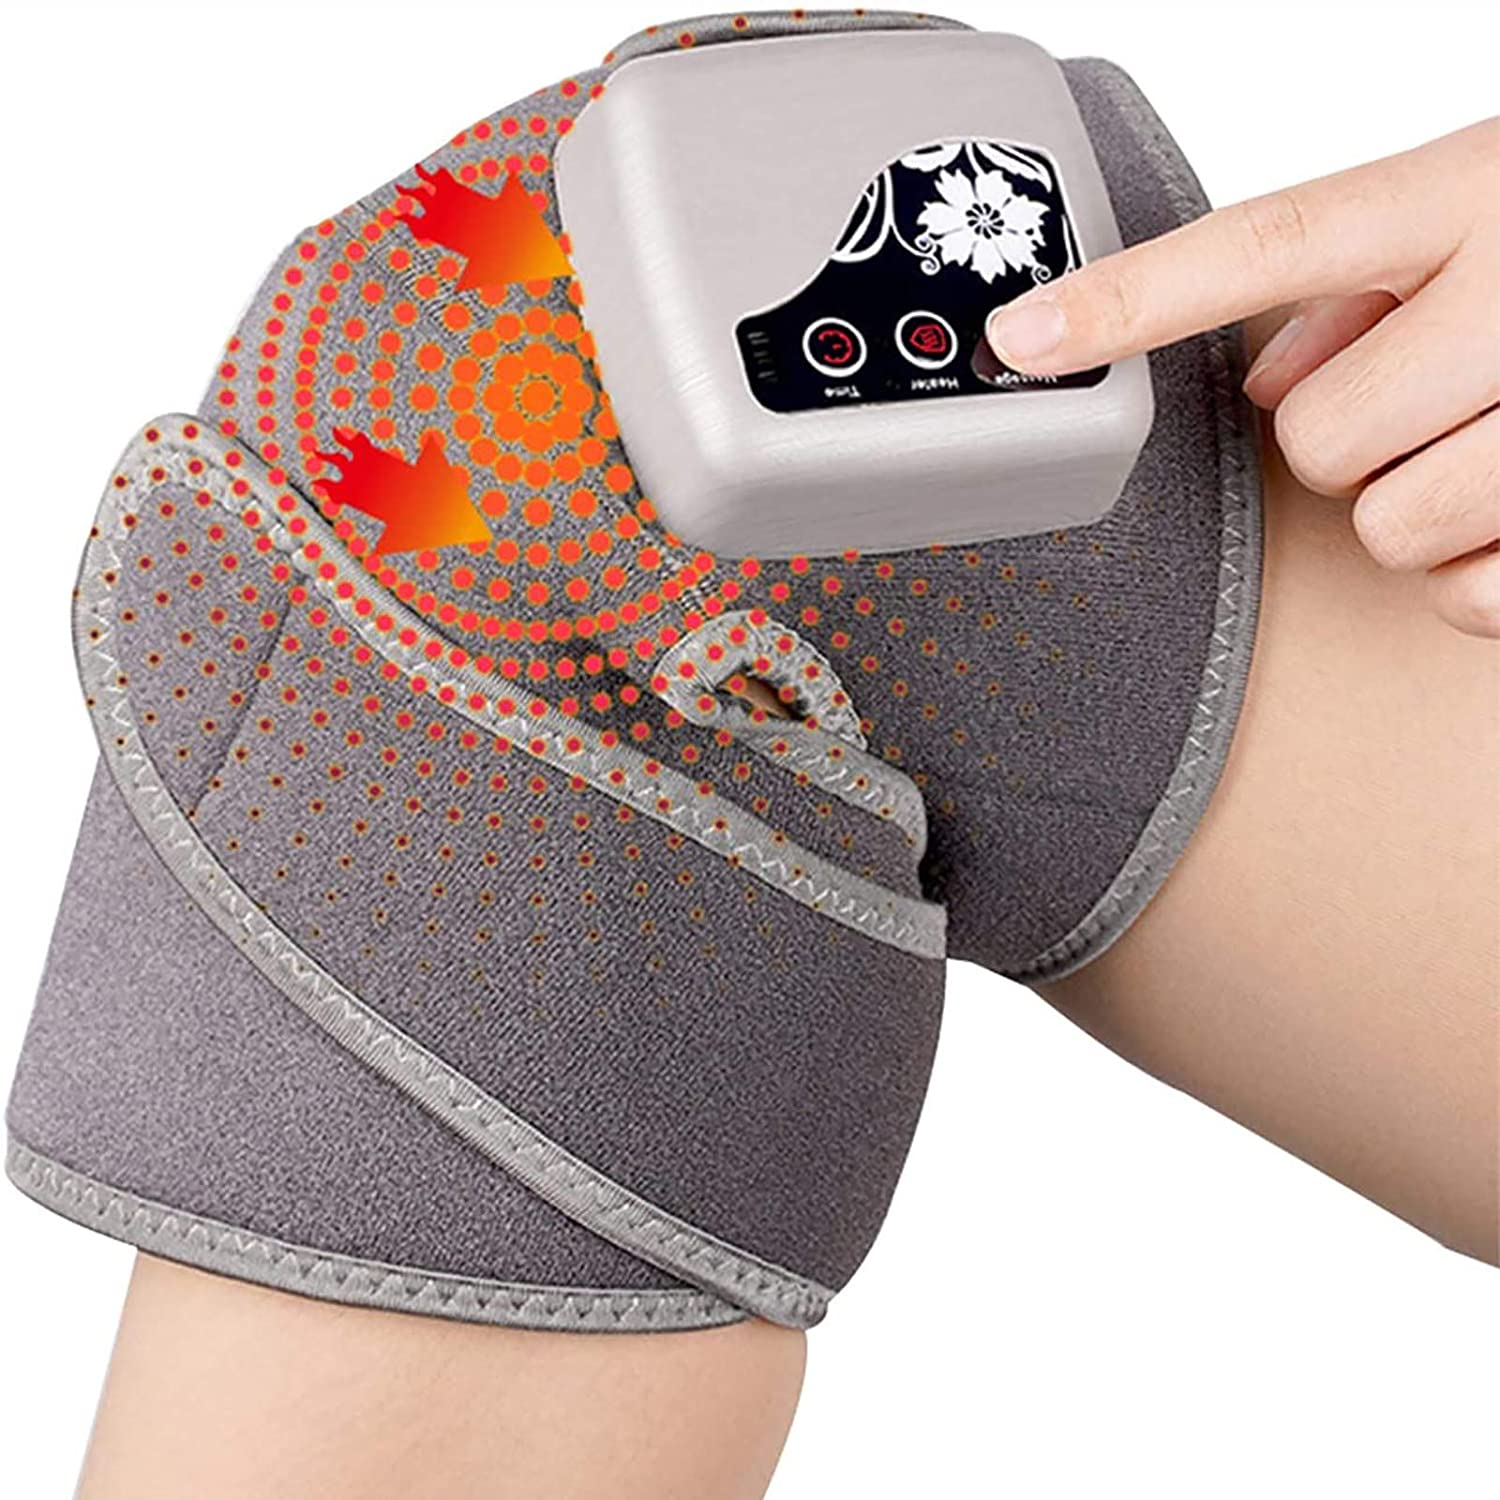 BTTHWR Heated and Vibration Knee Massager Brace Wrap, 3 in 1 Rechargeable Electric Heating Pad Massage for Knee Shoulder - Joint Muscles Arthritis Injury Pain Relief (Single Pack)